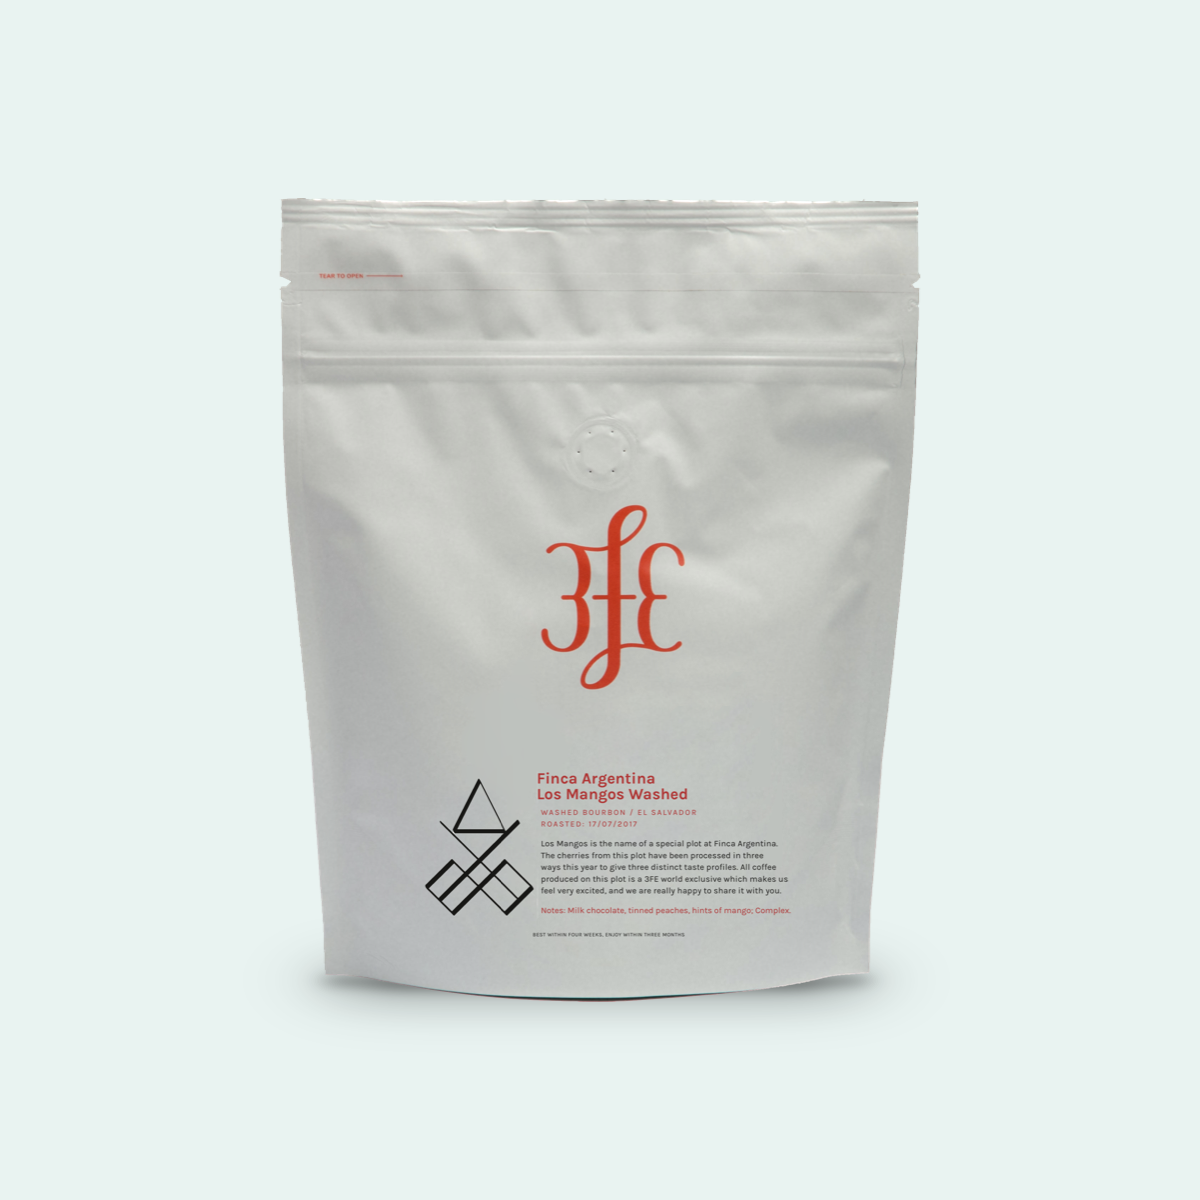 Farm: Finca Argentina  Country: El Salvador  Processing Method: Washed  Coffee Varietal: Bourbon  Tasting Notes: Milk Chocolate, Green Apple, Peach.  Price: €12